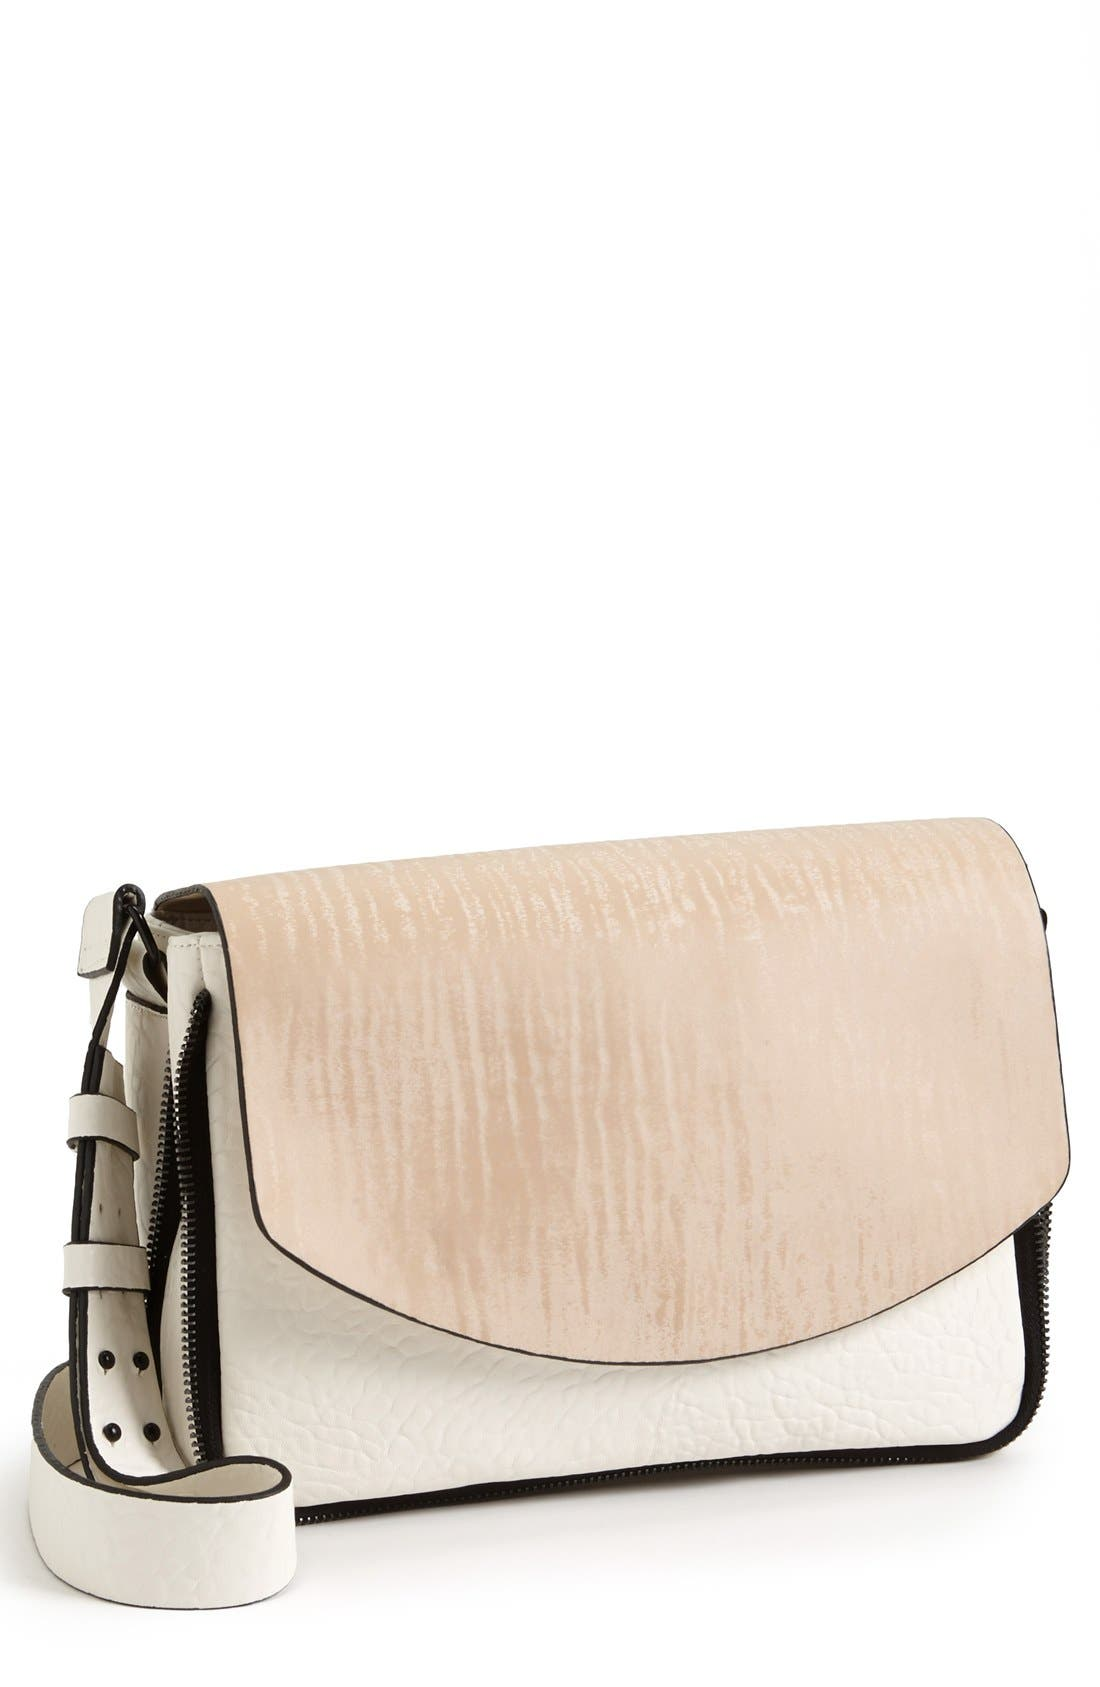 Main Image - French Connection 'Chelsea' Crossbody Bag